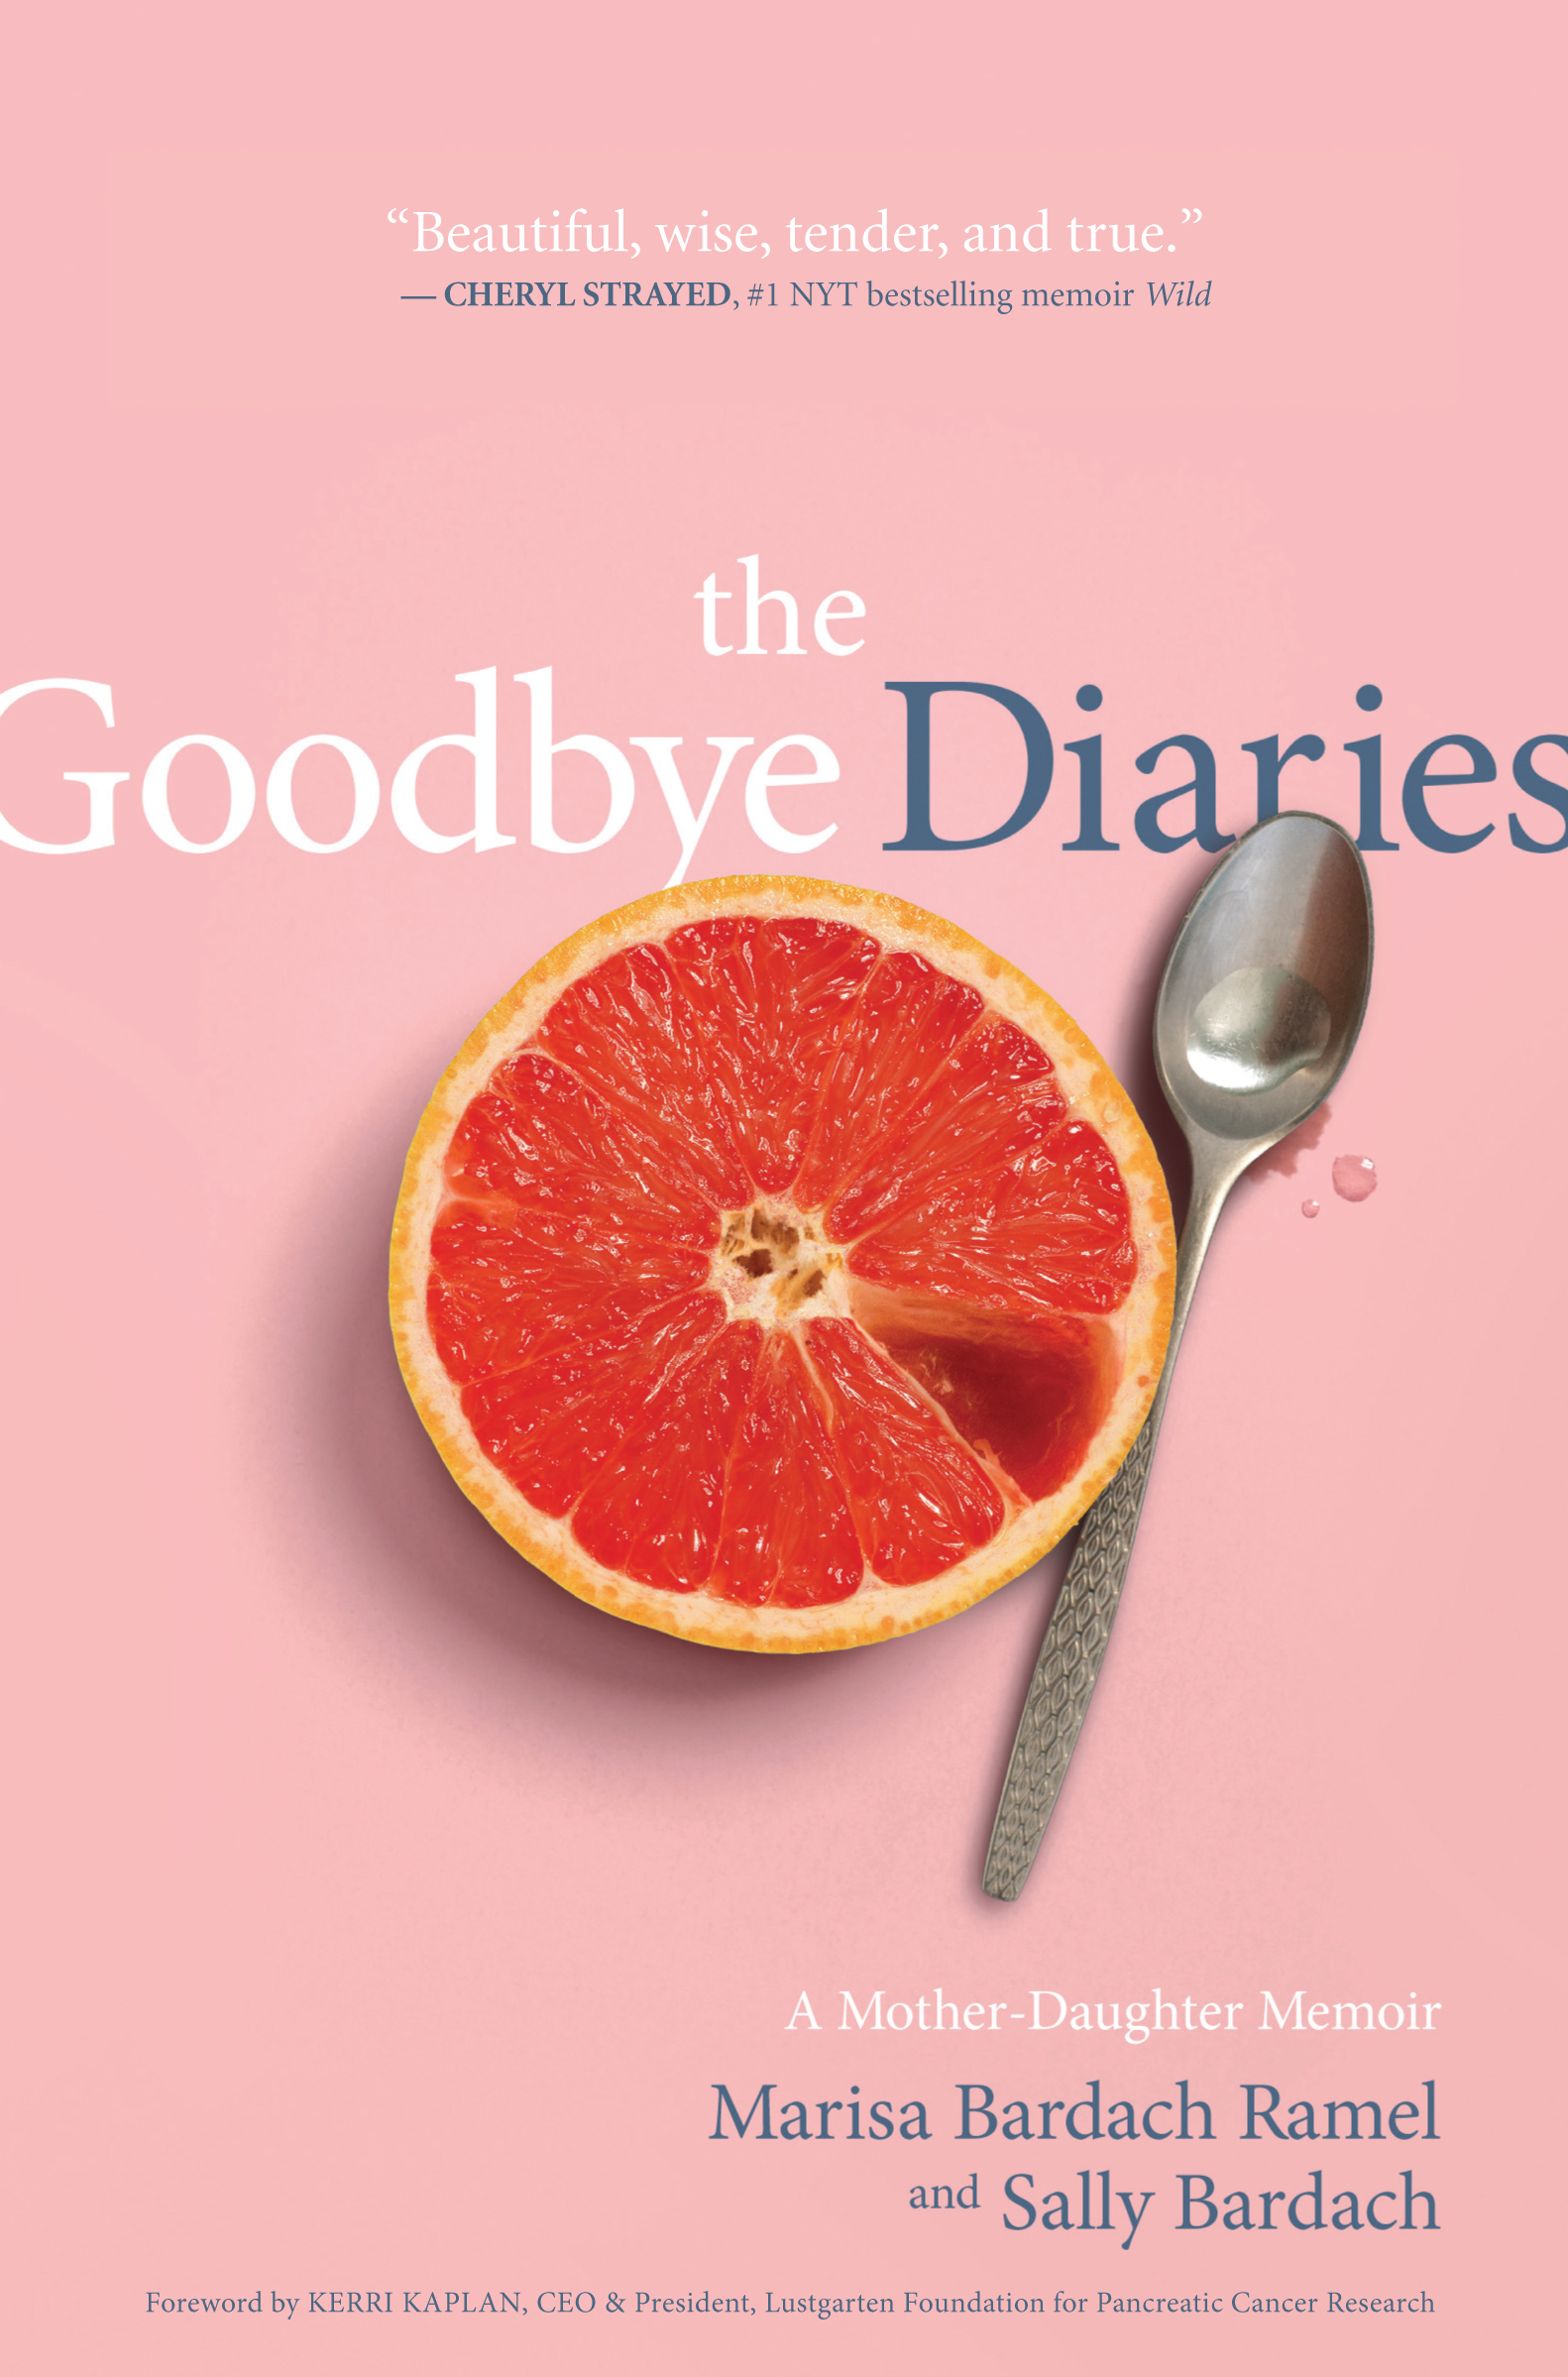 Marisa Bardach Ramel and Sally Bardach, THE GOODBYE DIARIES